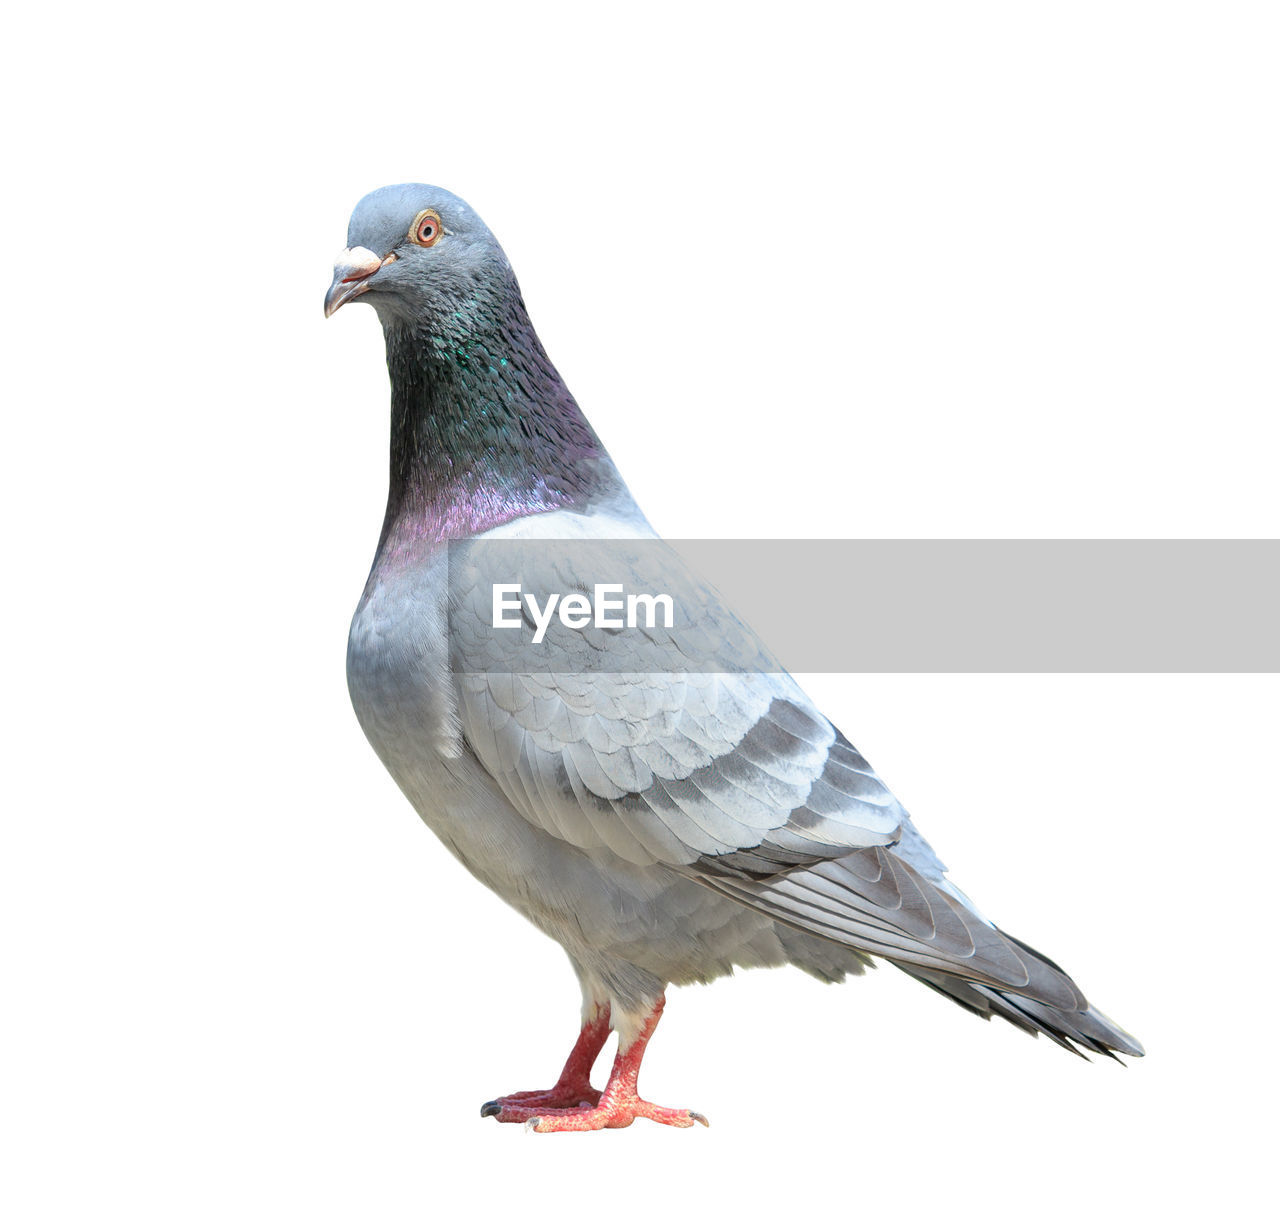 bird, vertebrate, animal, animals in the wild, animal themes, animal wildlife, one animal, pigeon, no people, perching, close-up, copy space, studio shot, day, nature, full length, side view, looking away, white background, looking, seagull